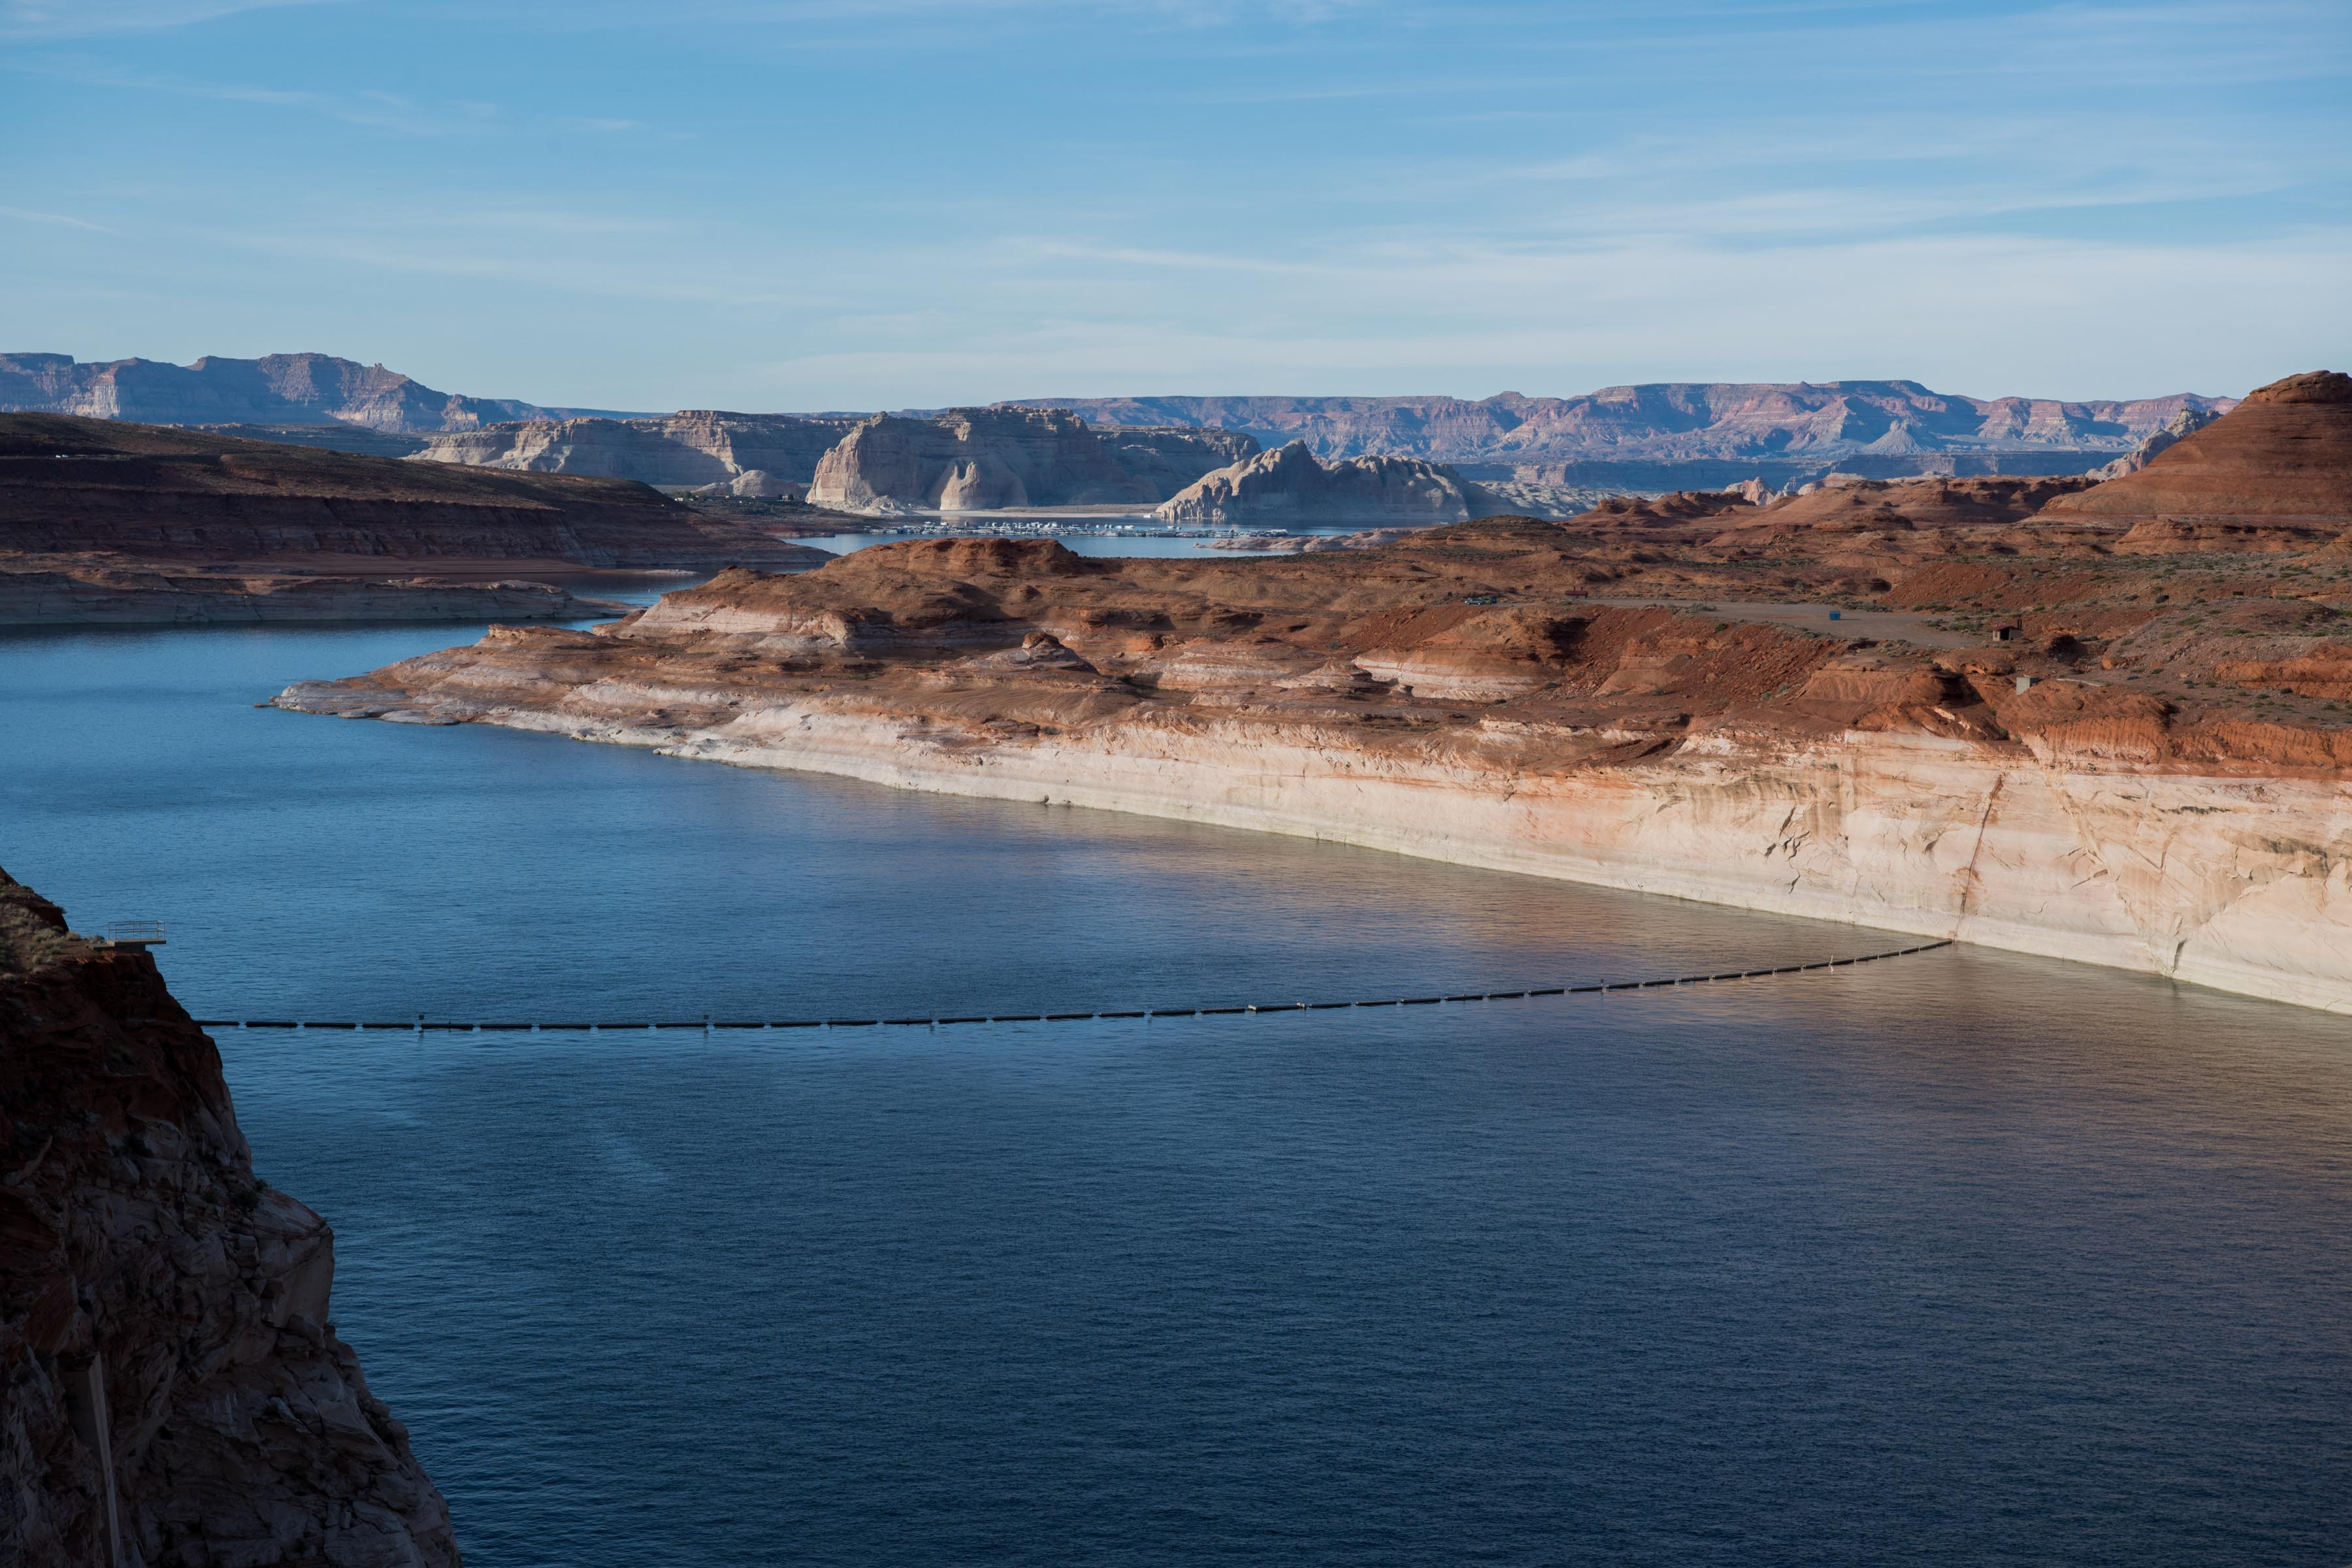 This picture shows Lake Powell.